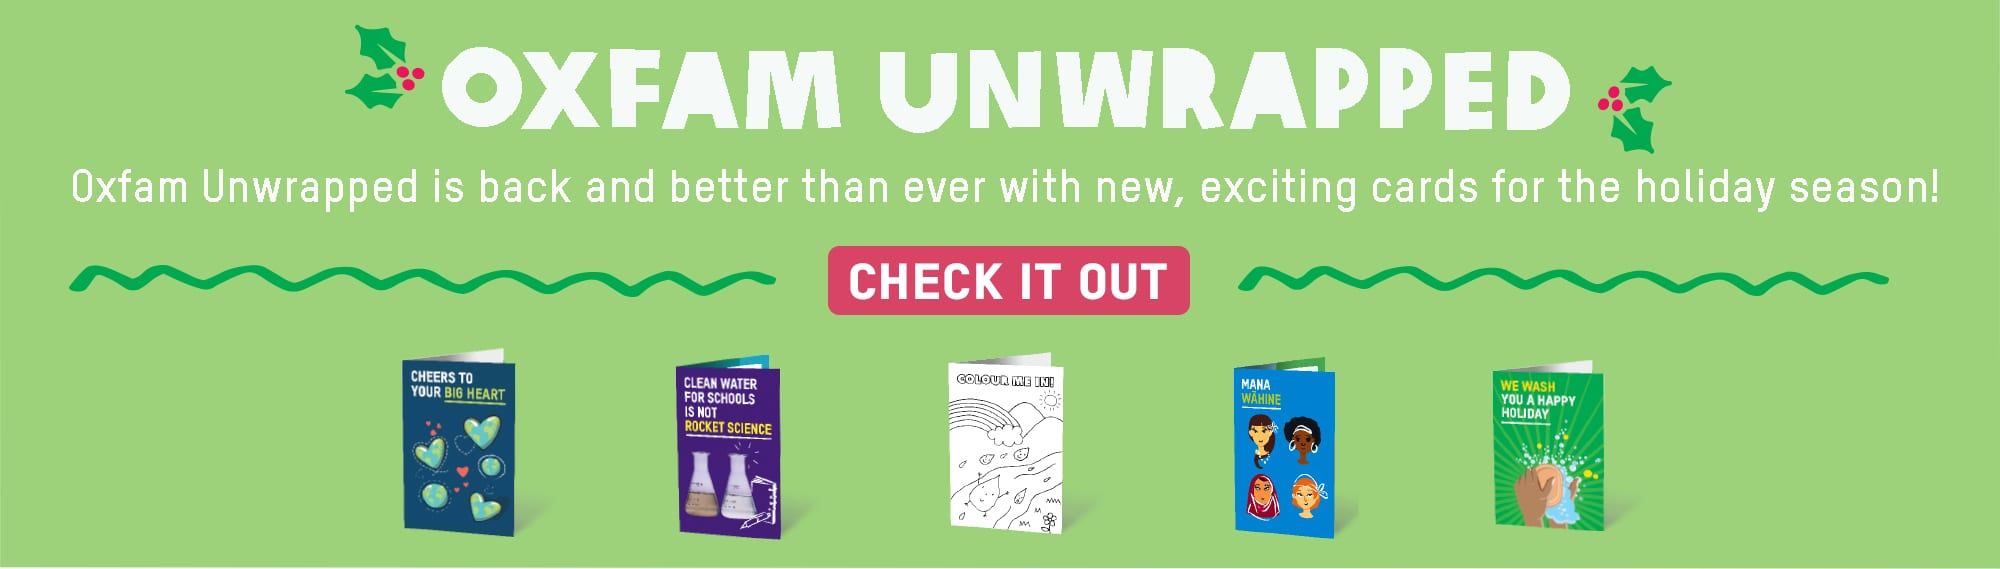 Oxfam Unwrapped Banner